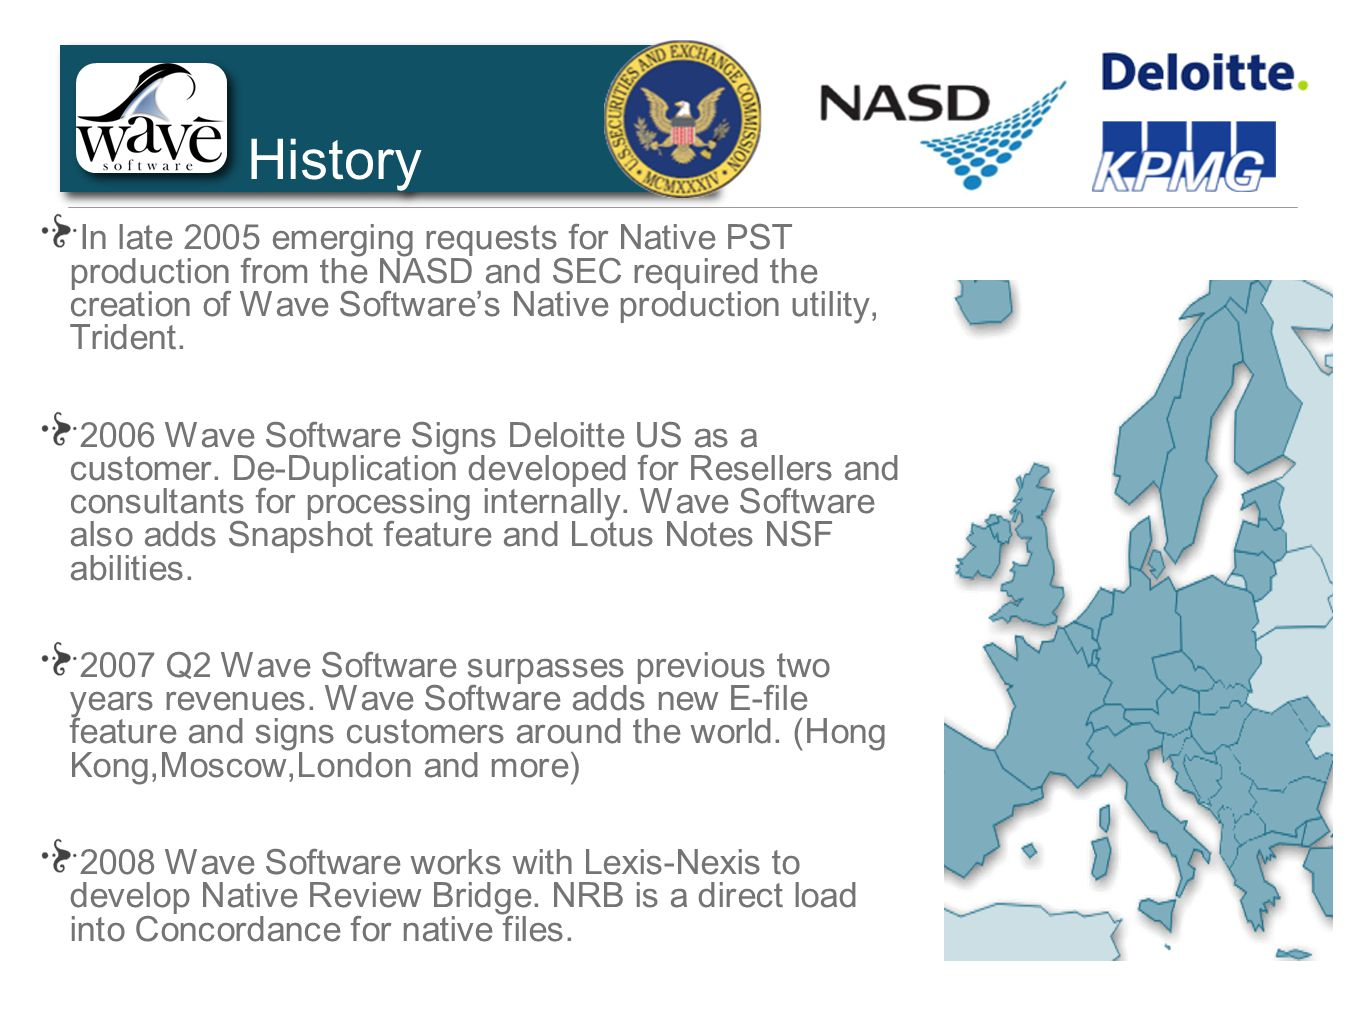 In late 2005 emerging requests for Native PST production from the NASD and SEC required the creation of Wave Software's Native production utility, Trident.